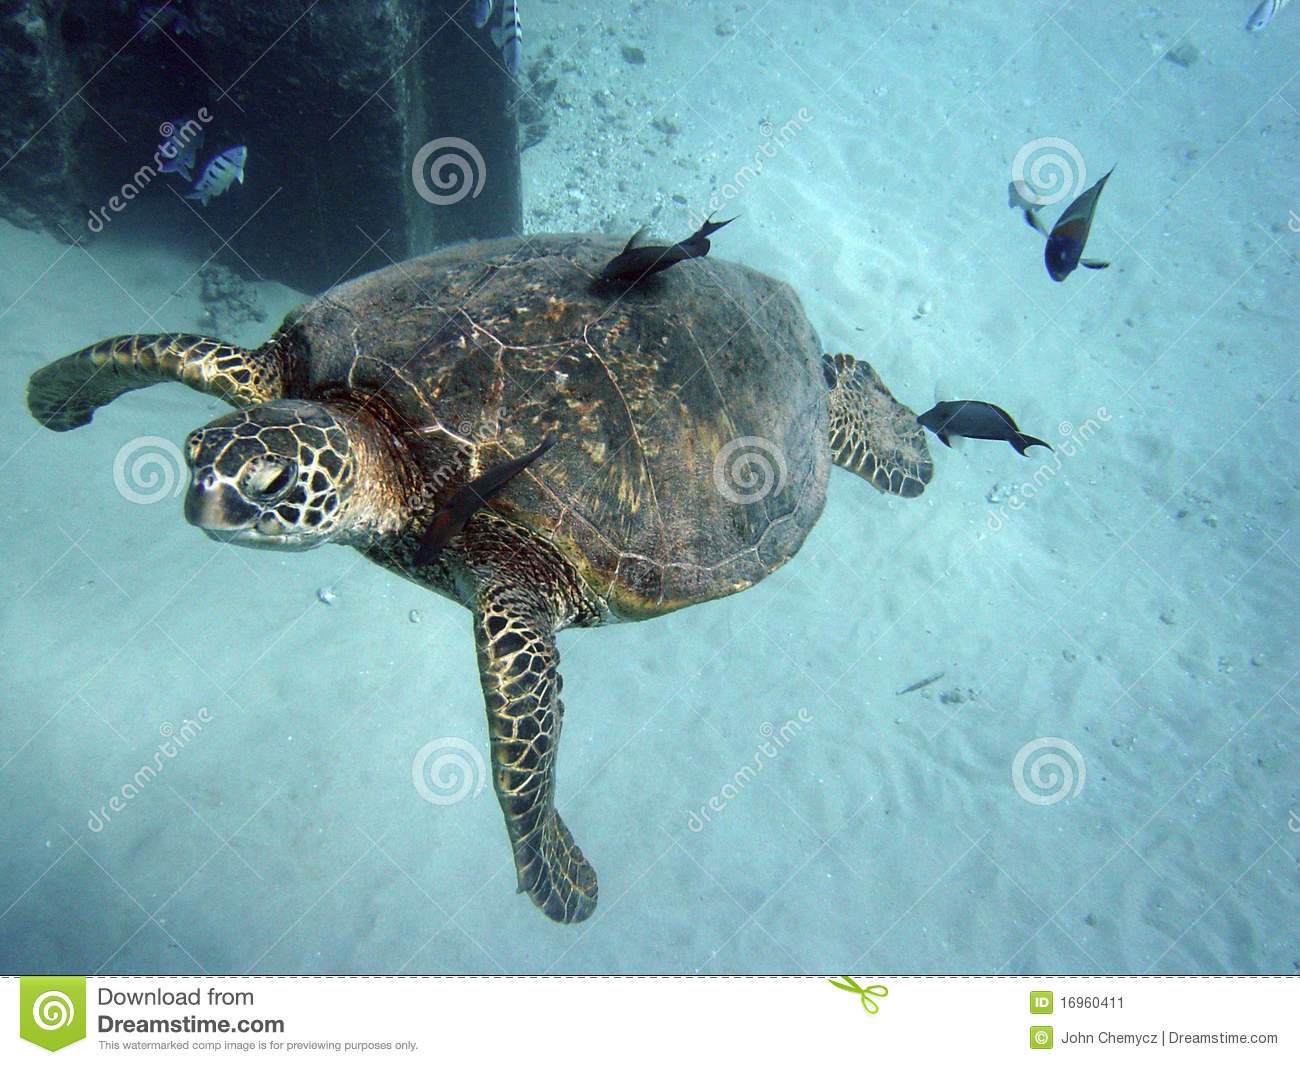 Z4hhVeRFtAD as well Swimming With Sea Turtles In Hawaii moreover Frey  28Fisheye Placebo 29 as well 90 besides Profile. on 77685